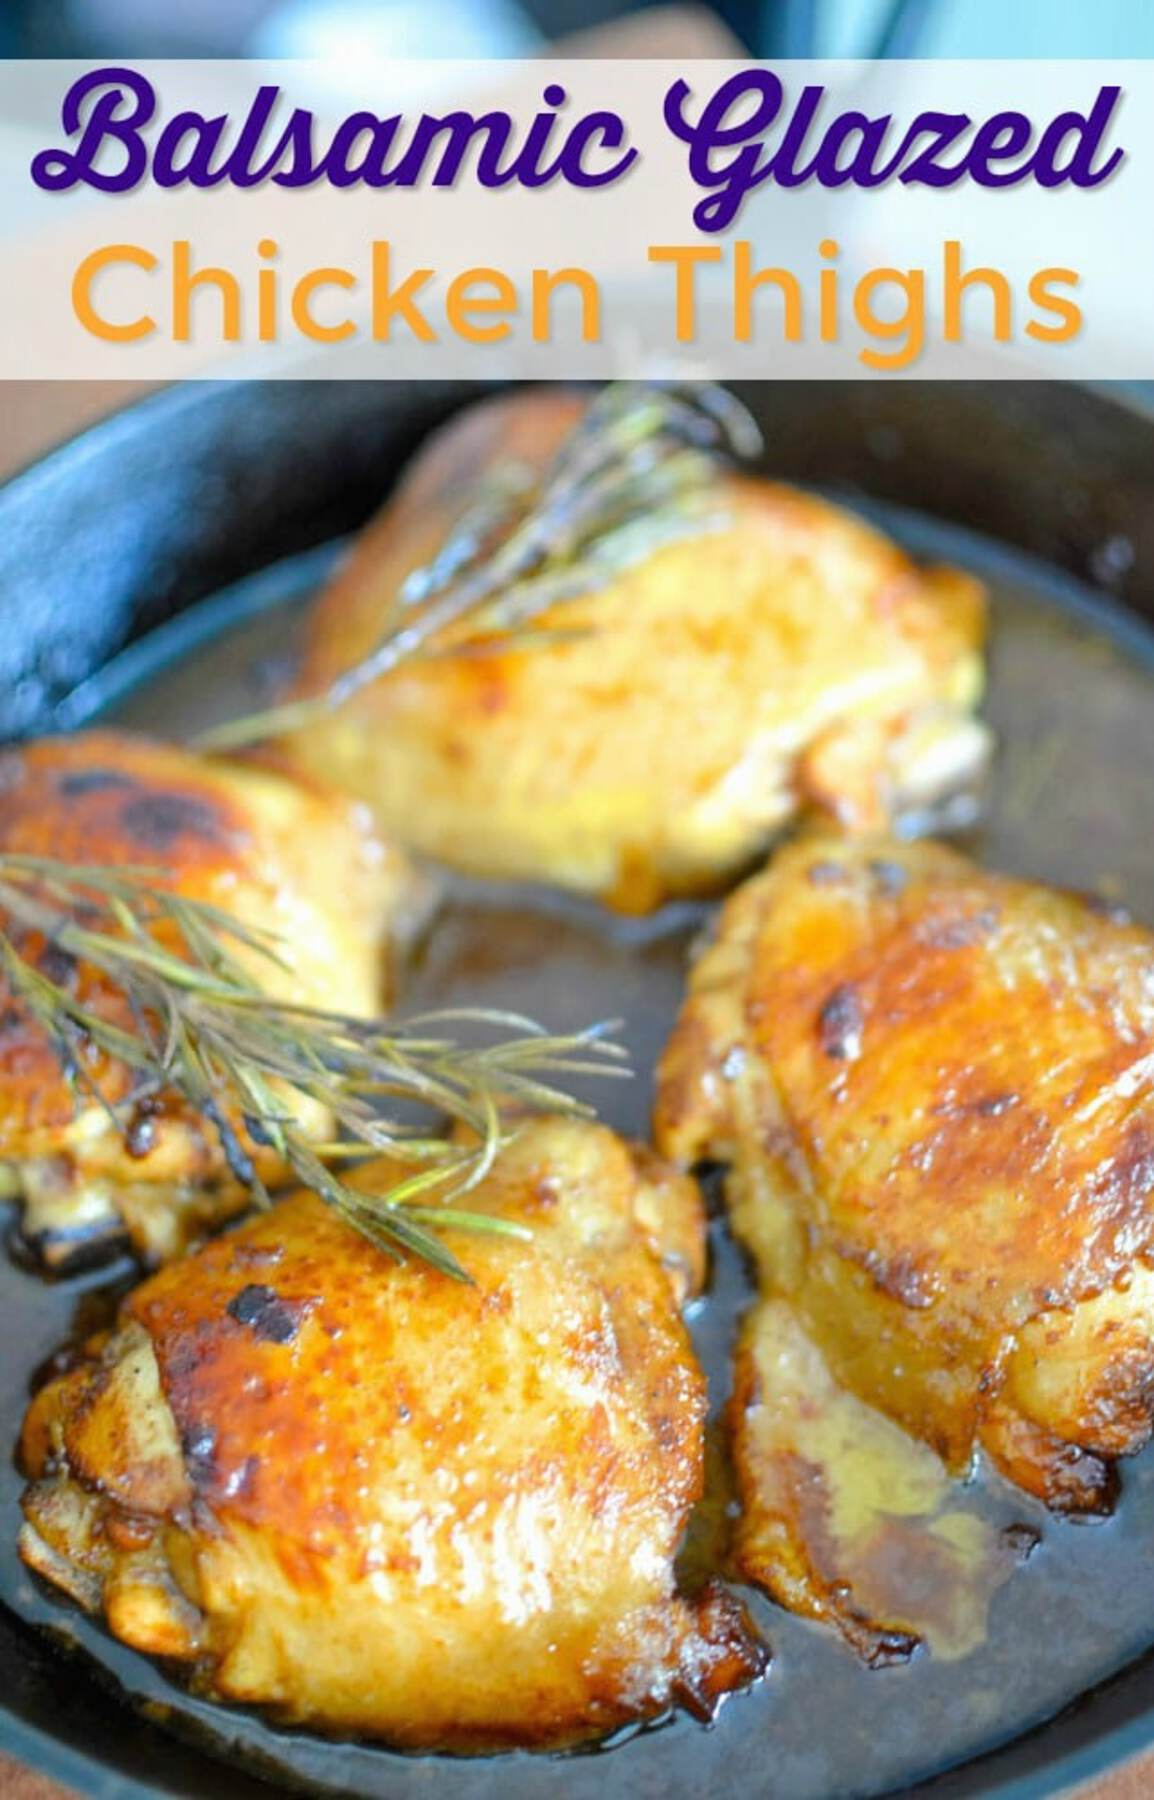 Chicken in skillet with rosemary